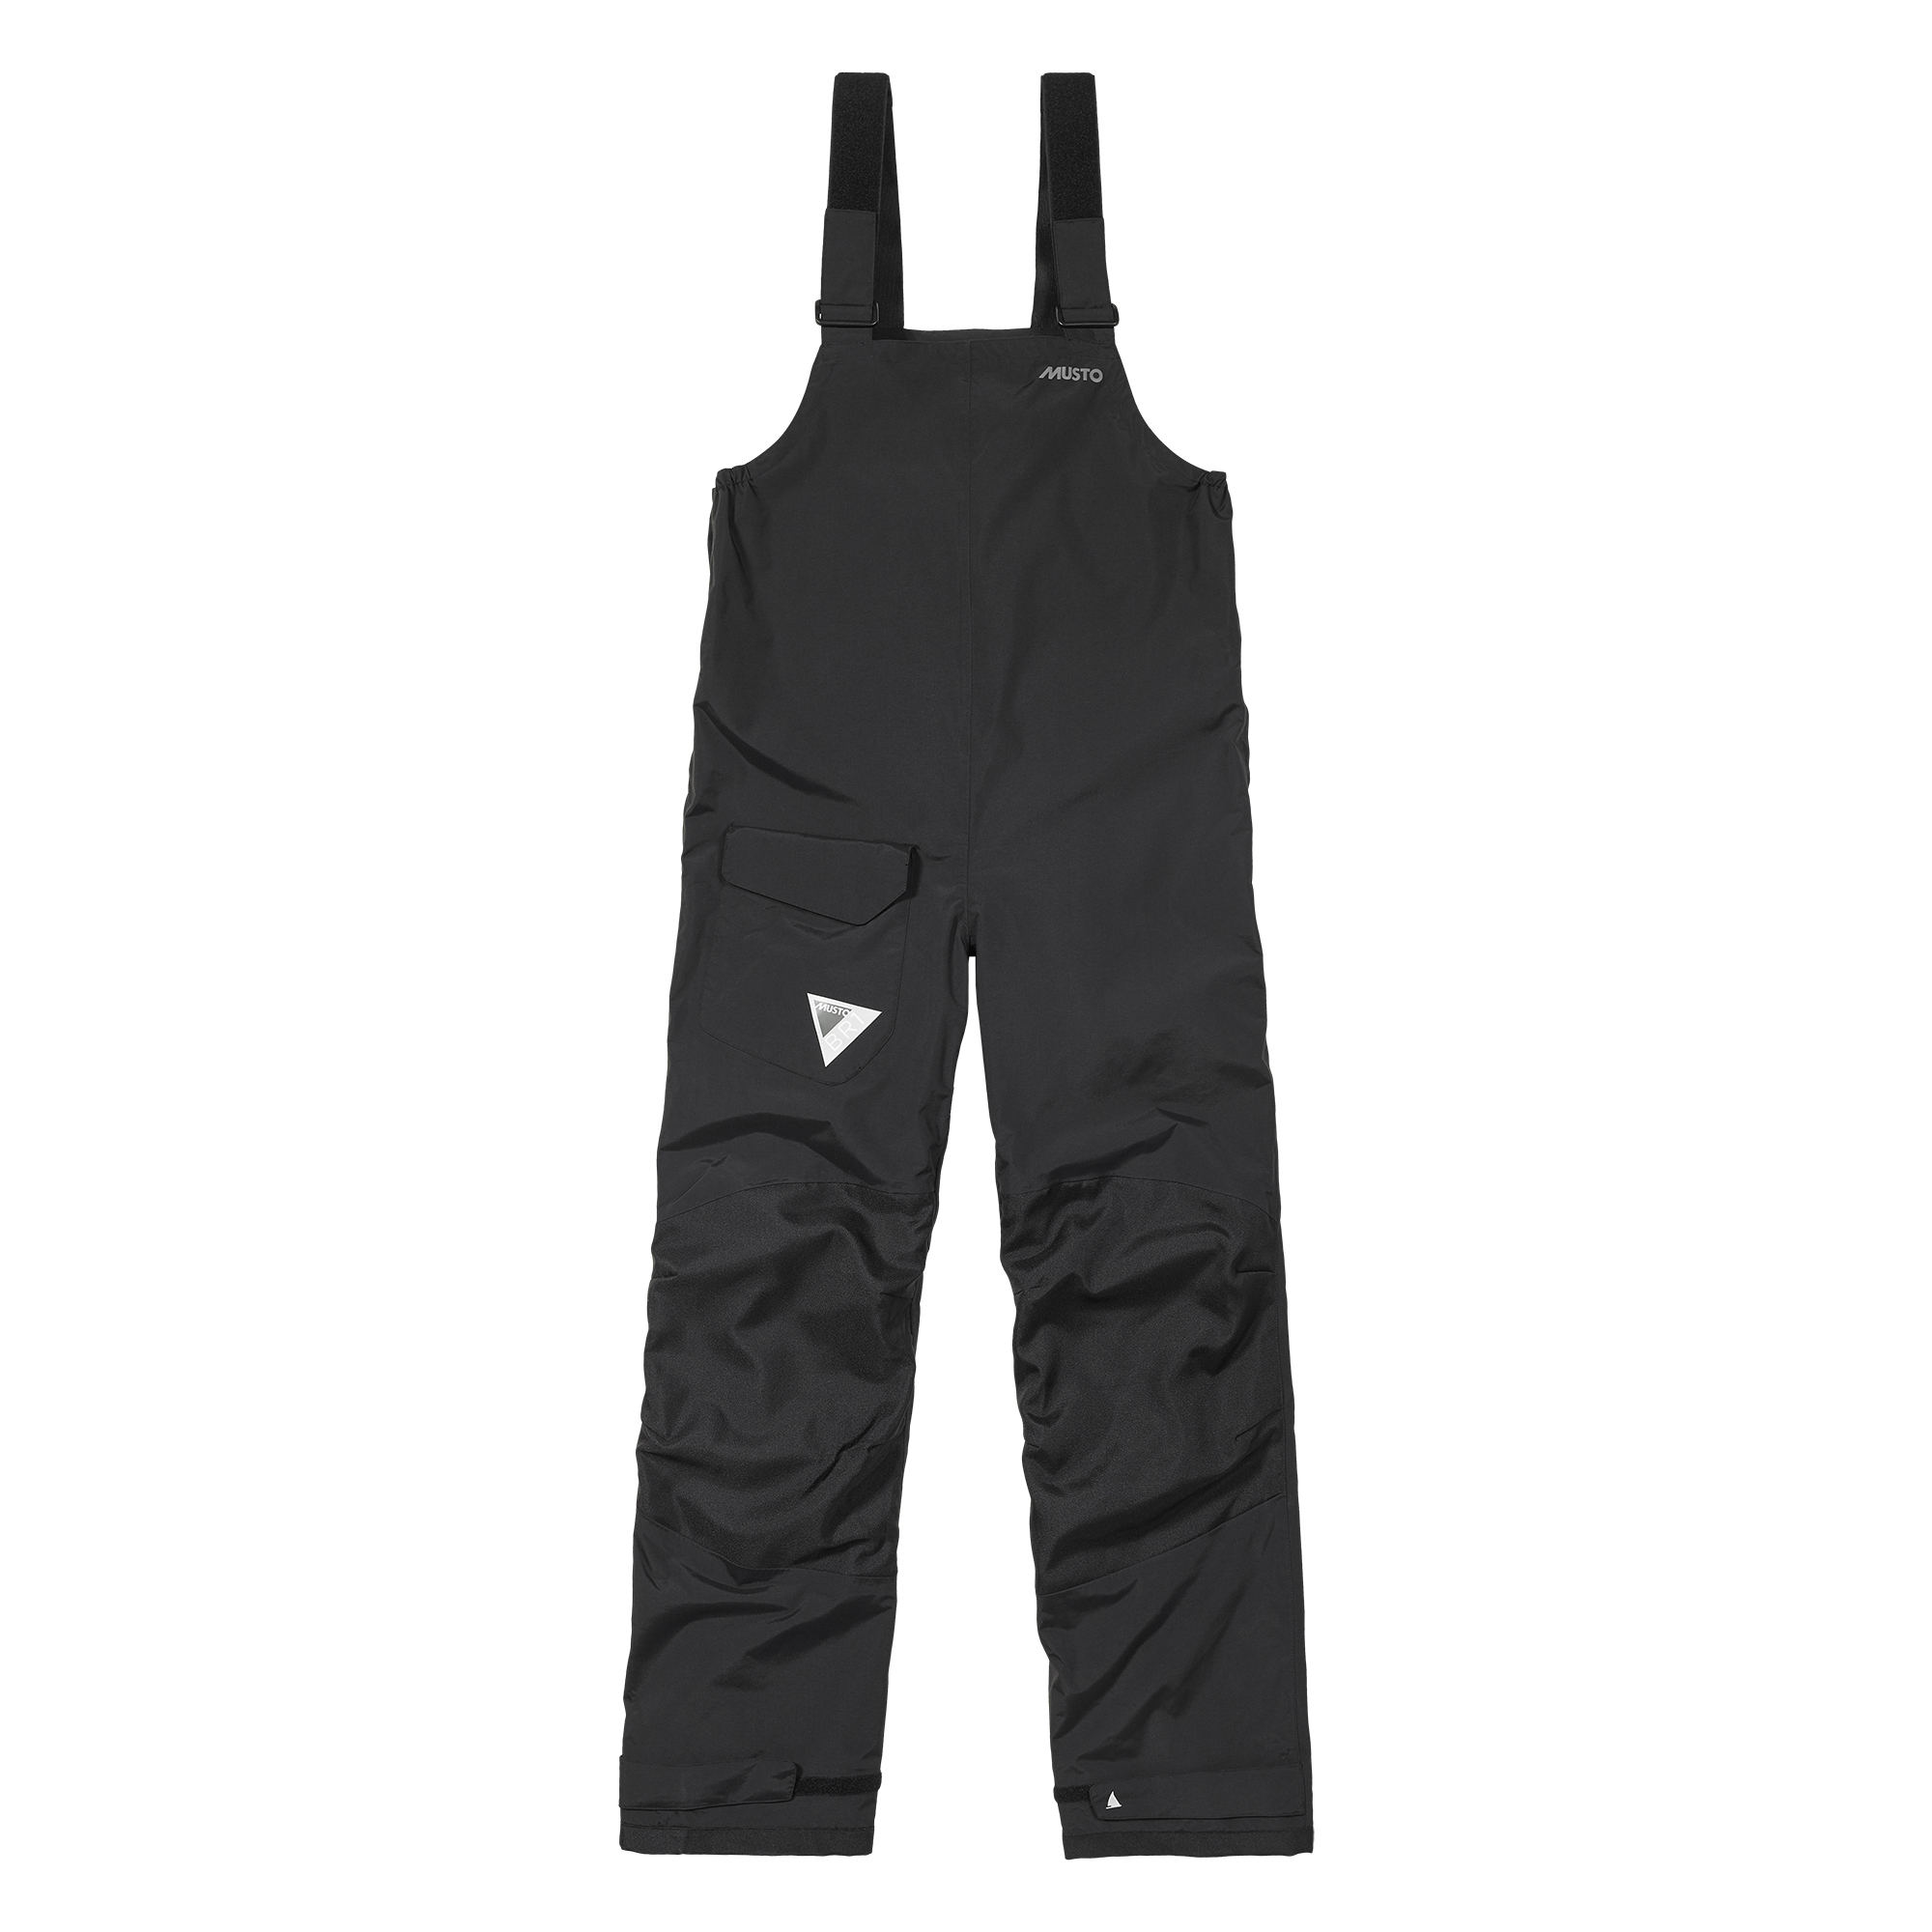 BR1 CORE TROUSERS